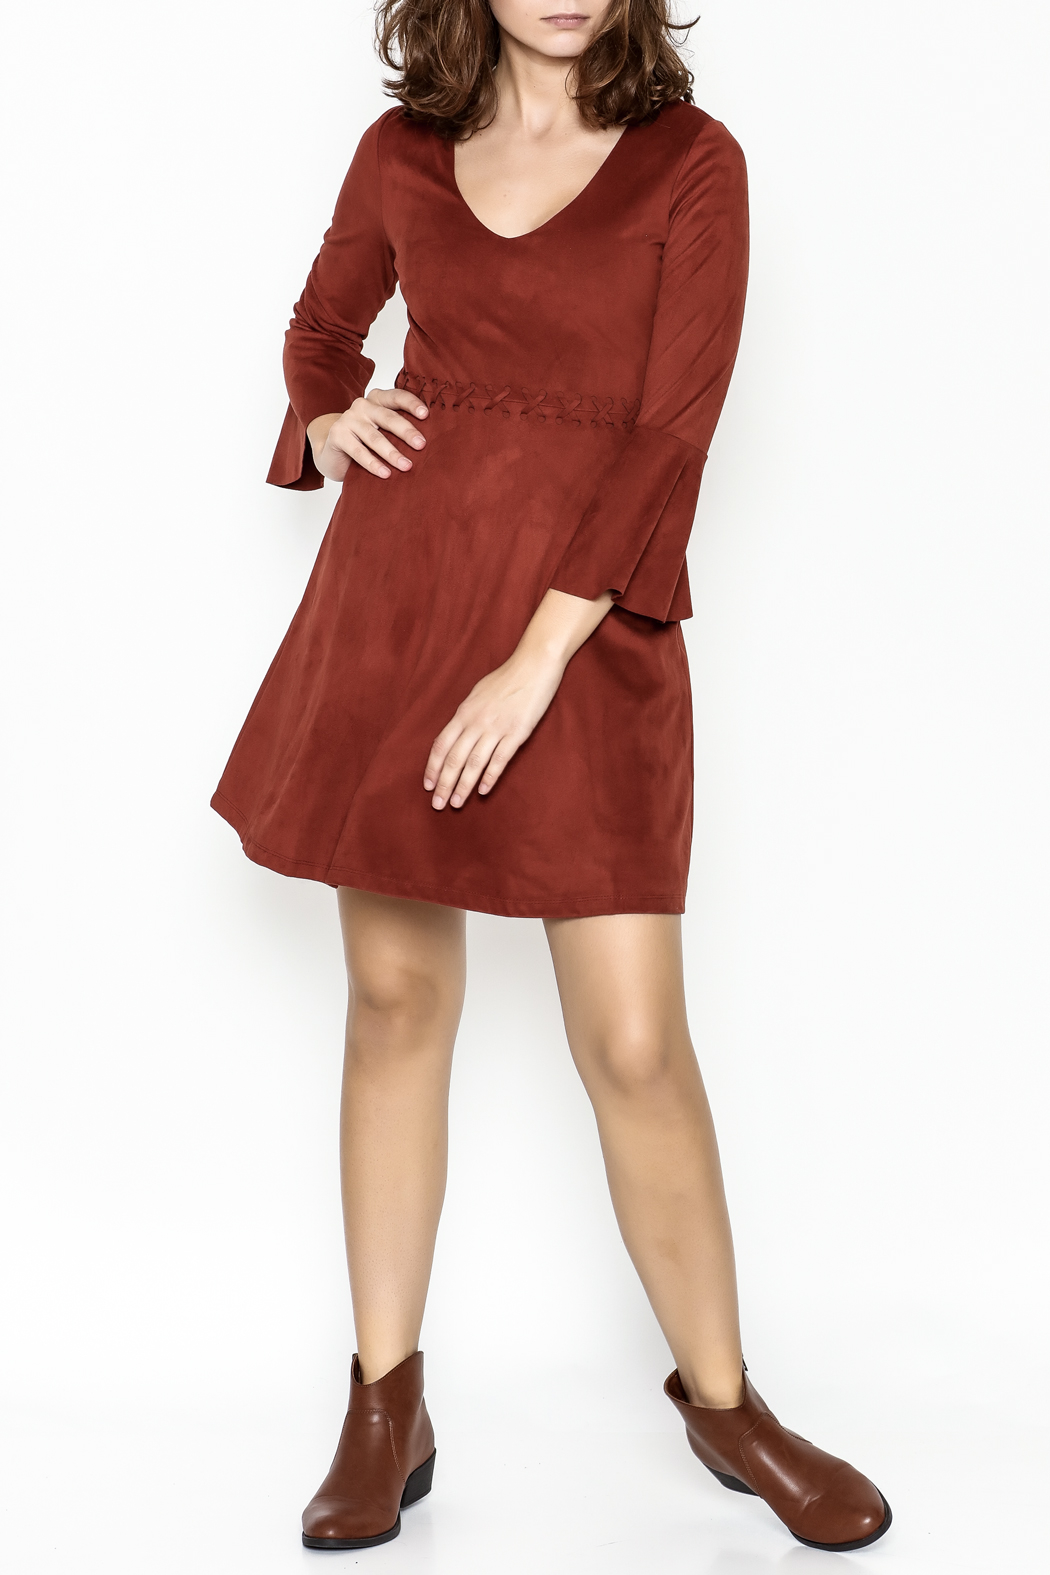 Black Swan Faux Suede Rust Dress - Side Cropped Image